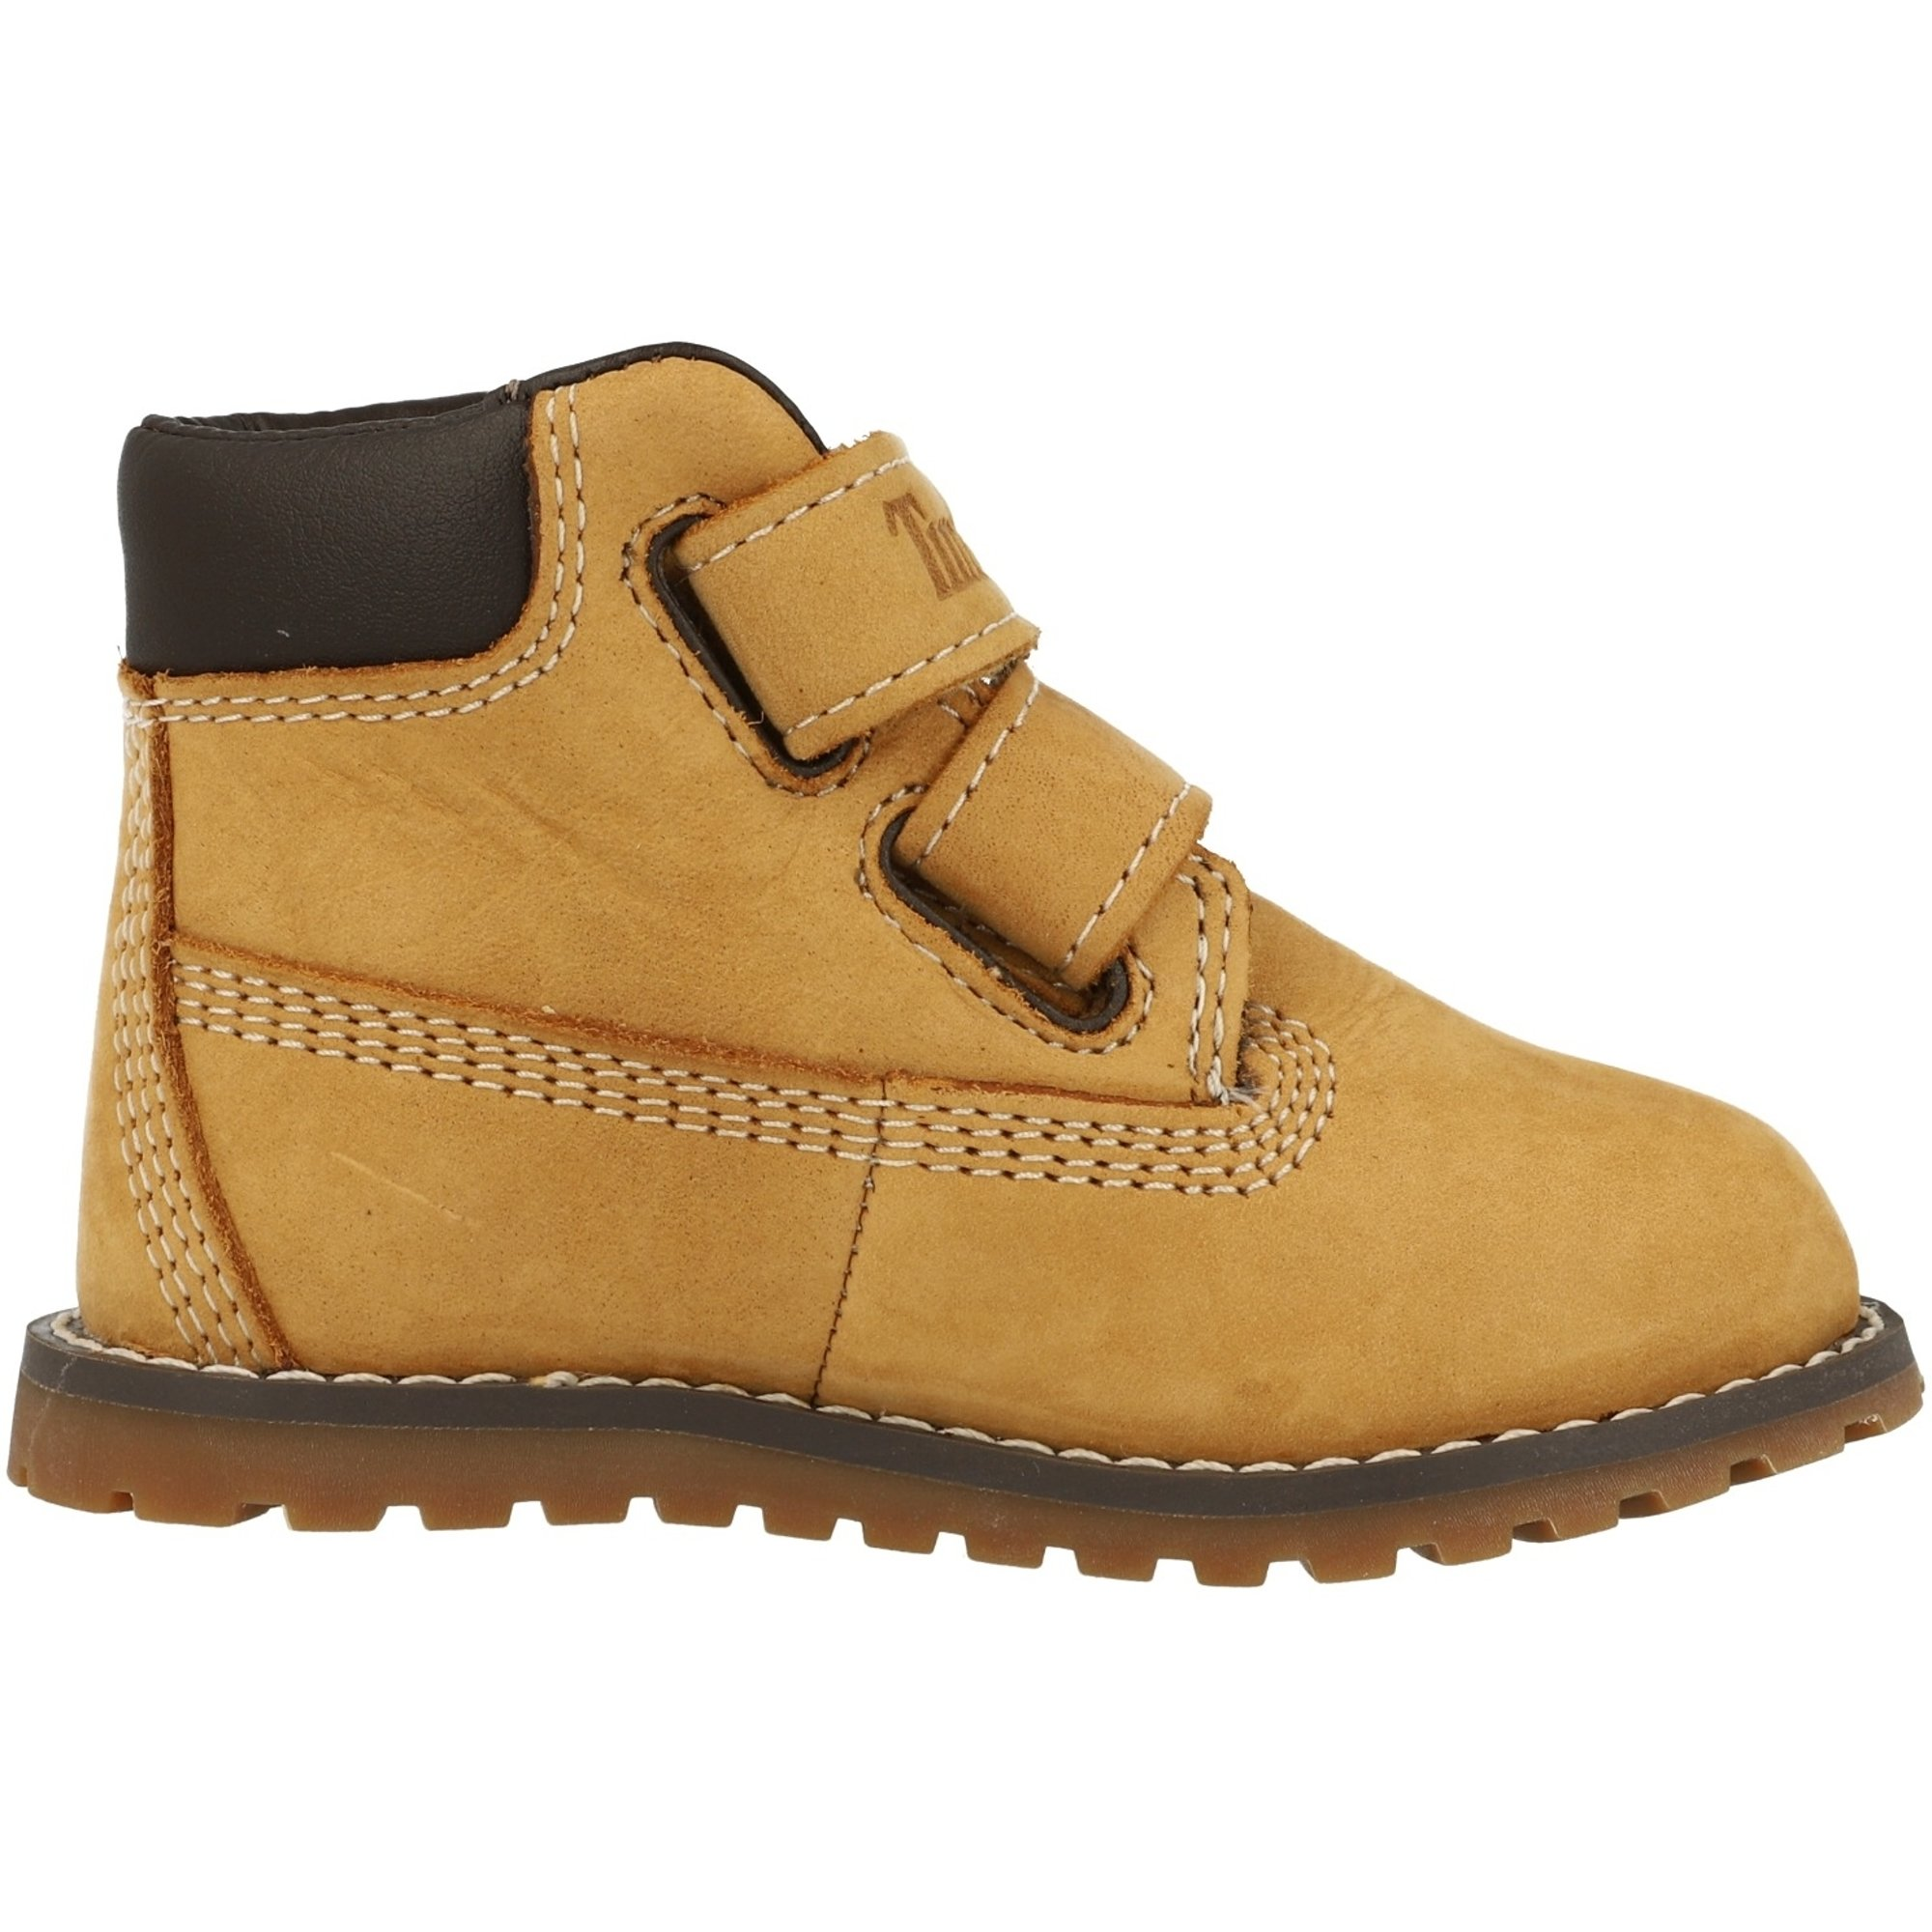 Timberland Pokey Pine Hook & Loop Wheat Nubuck Infant